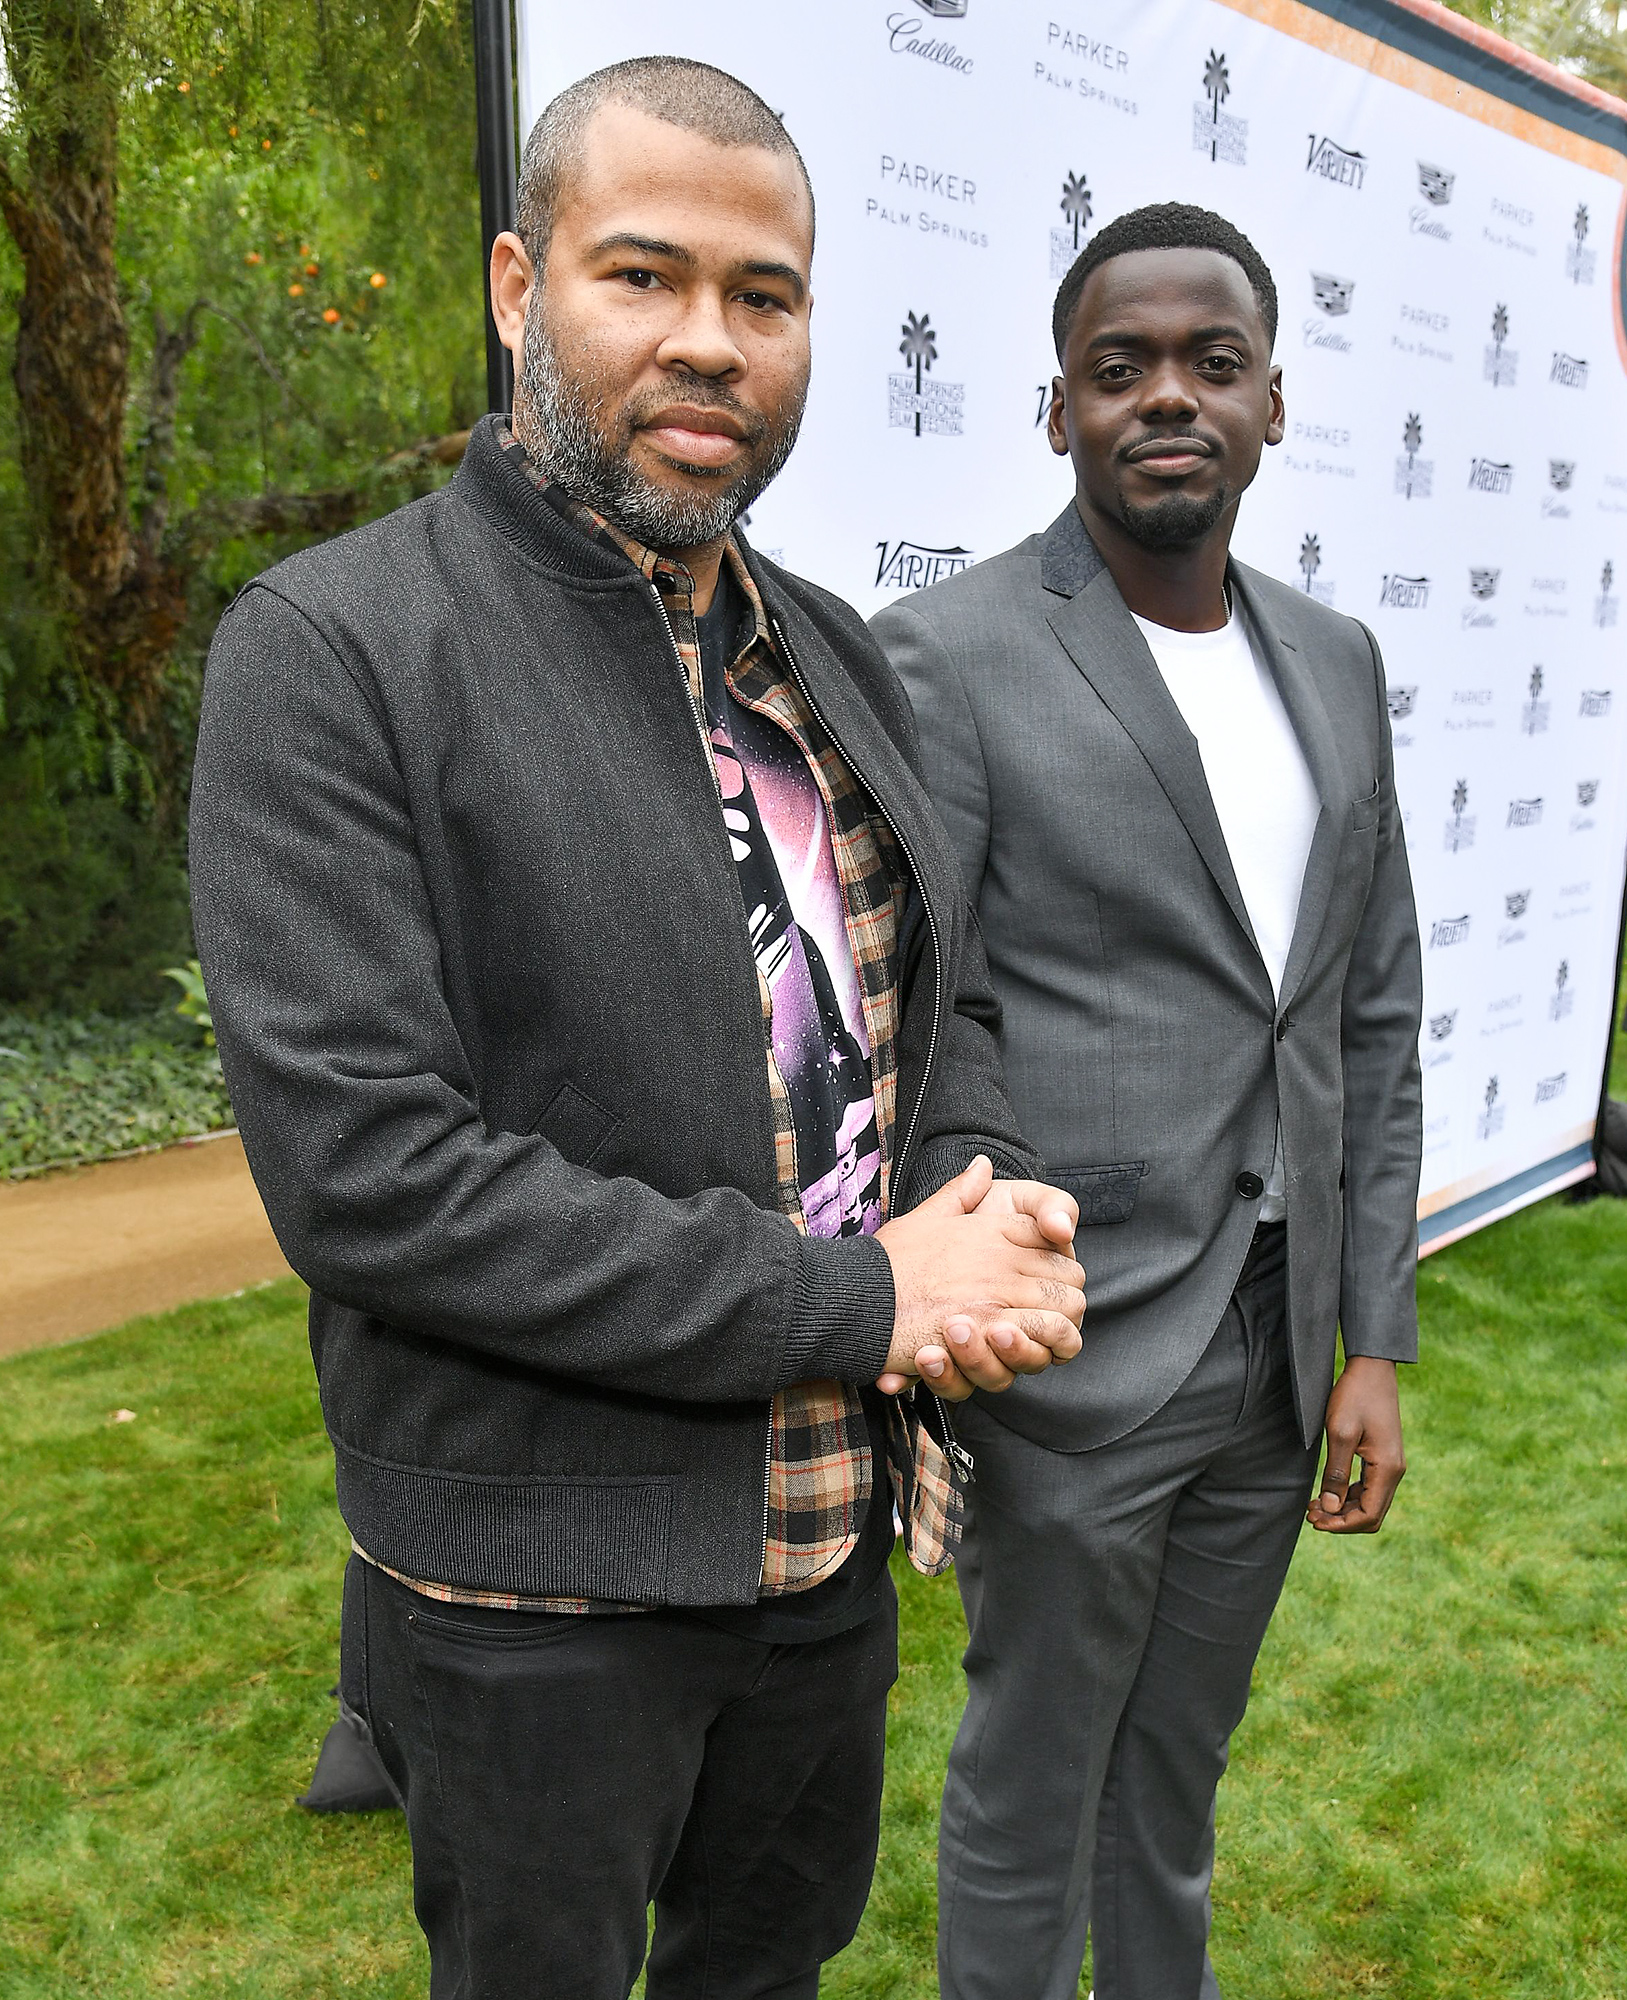 Variety's Creative Impact Awards and 10 Directors to watch Brunch, Palm Springs International Film Festival, USA - 03 Jan 2018